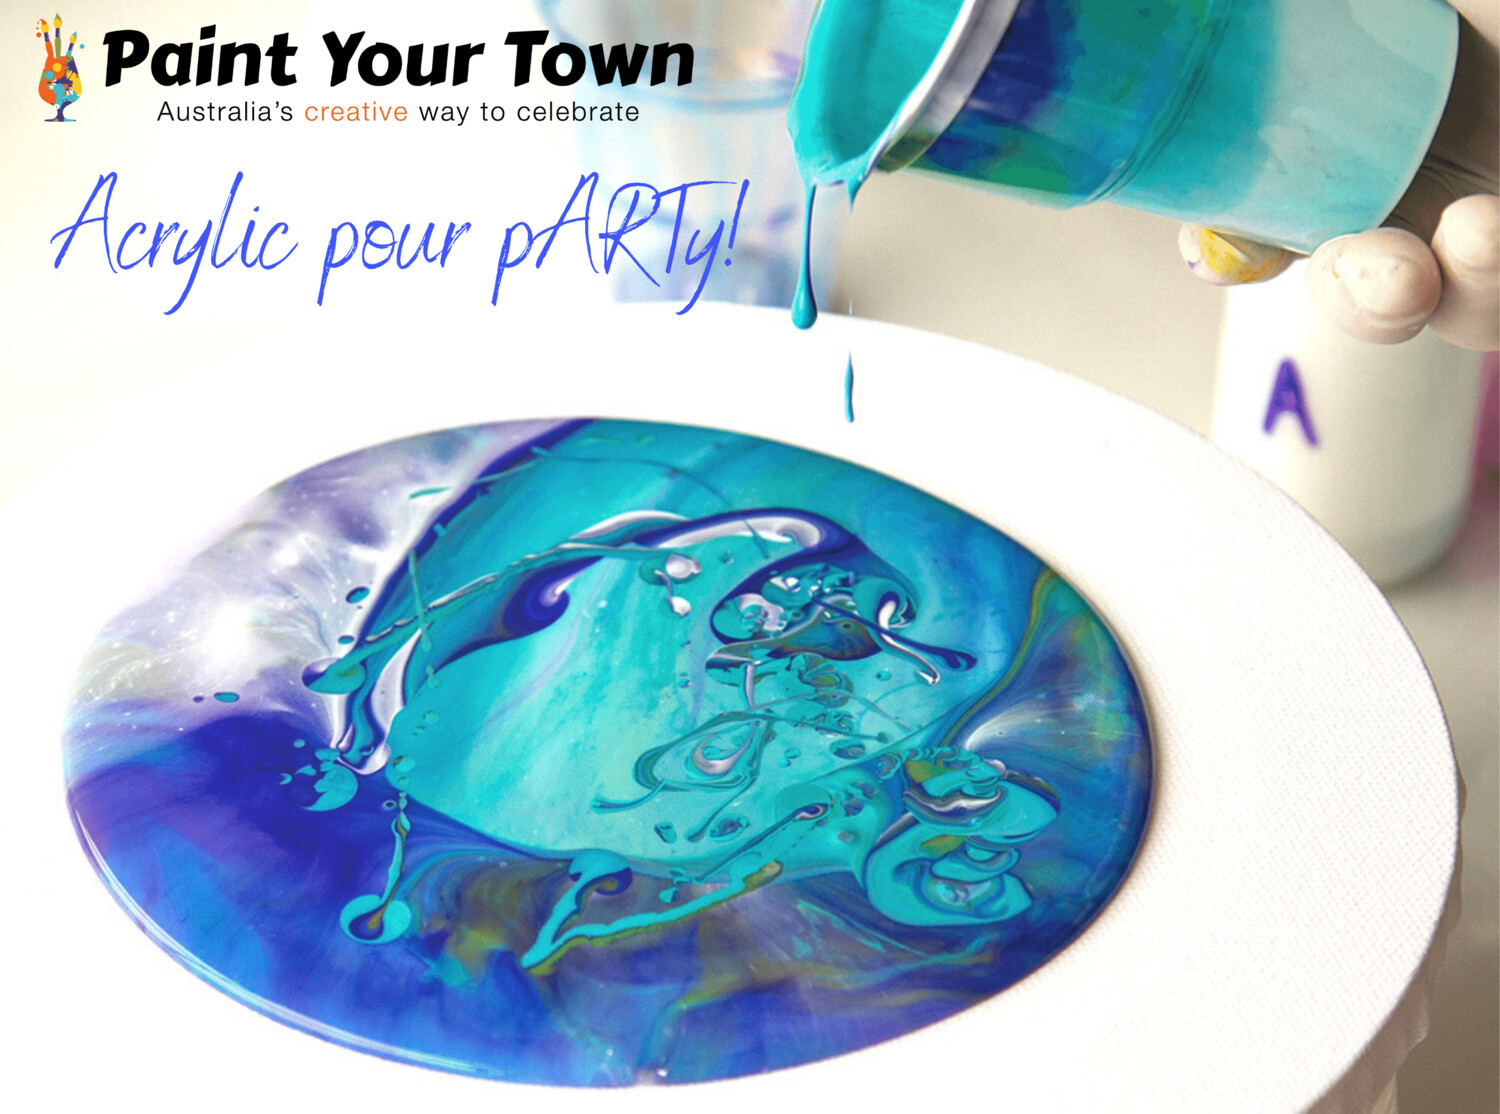 Acrylic Pour pARTy! - Dark Alley Coffee -  Saturday 18th July @ 2pm